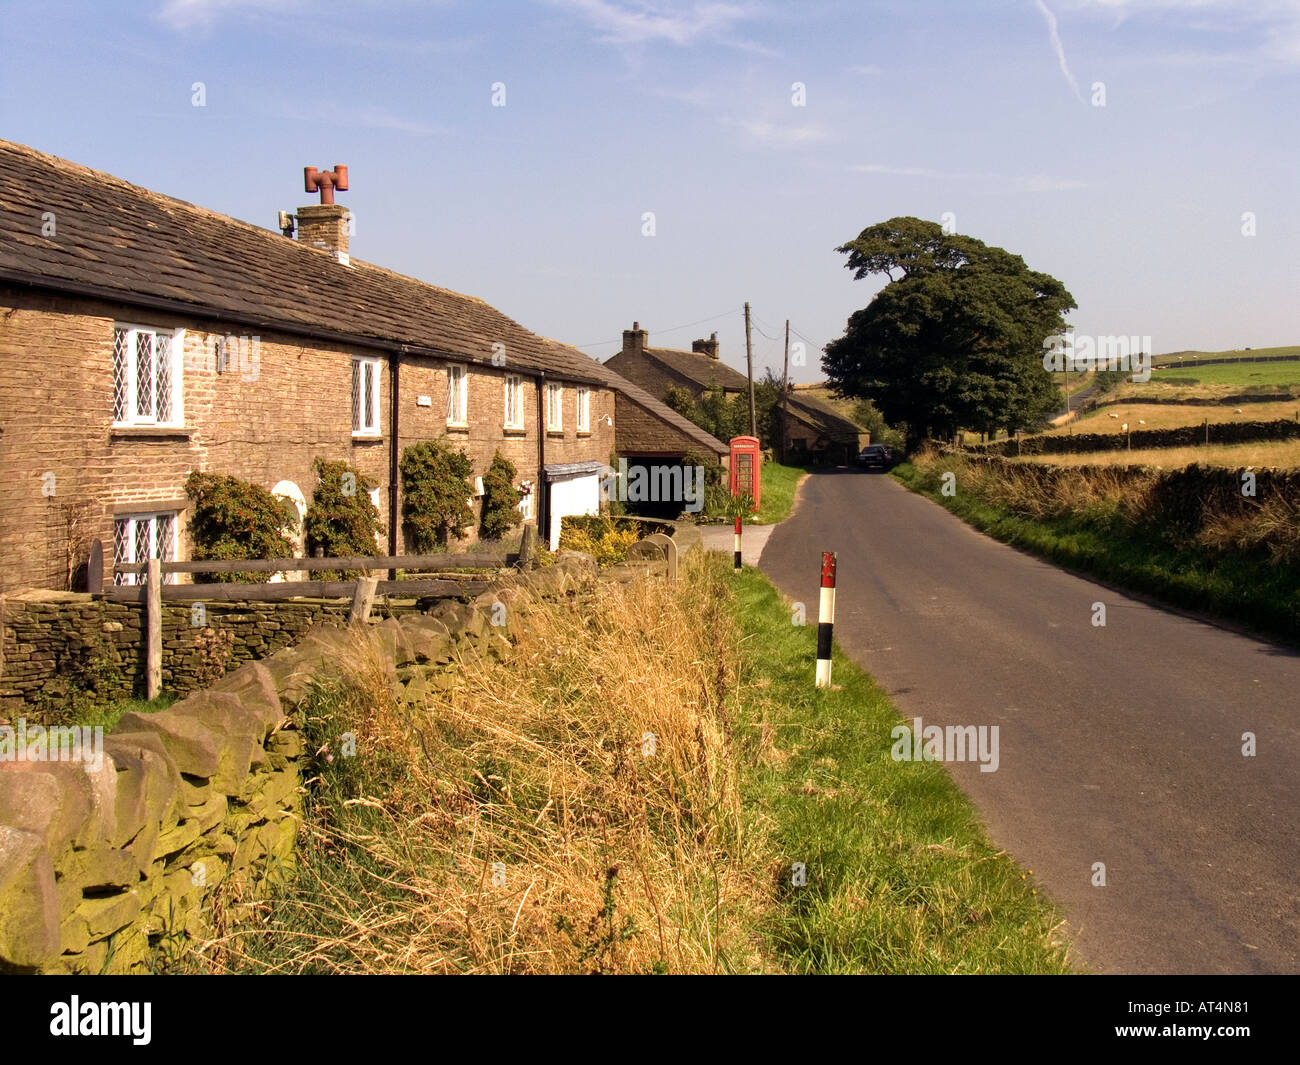 Cheshire Peak District Pikelow K6 phone box at Blue Boar Farm - Stock Image